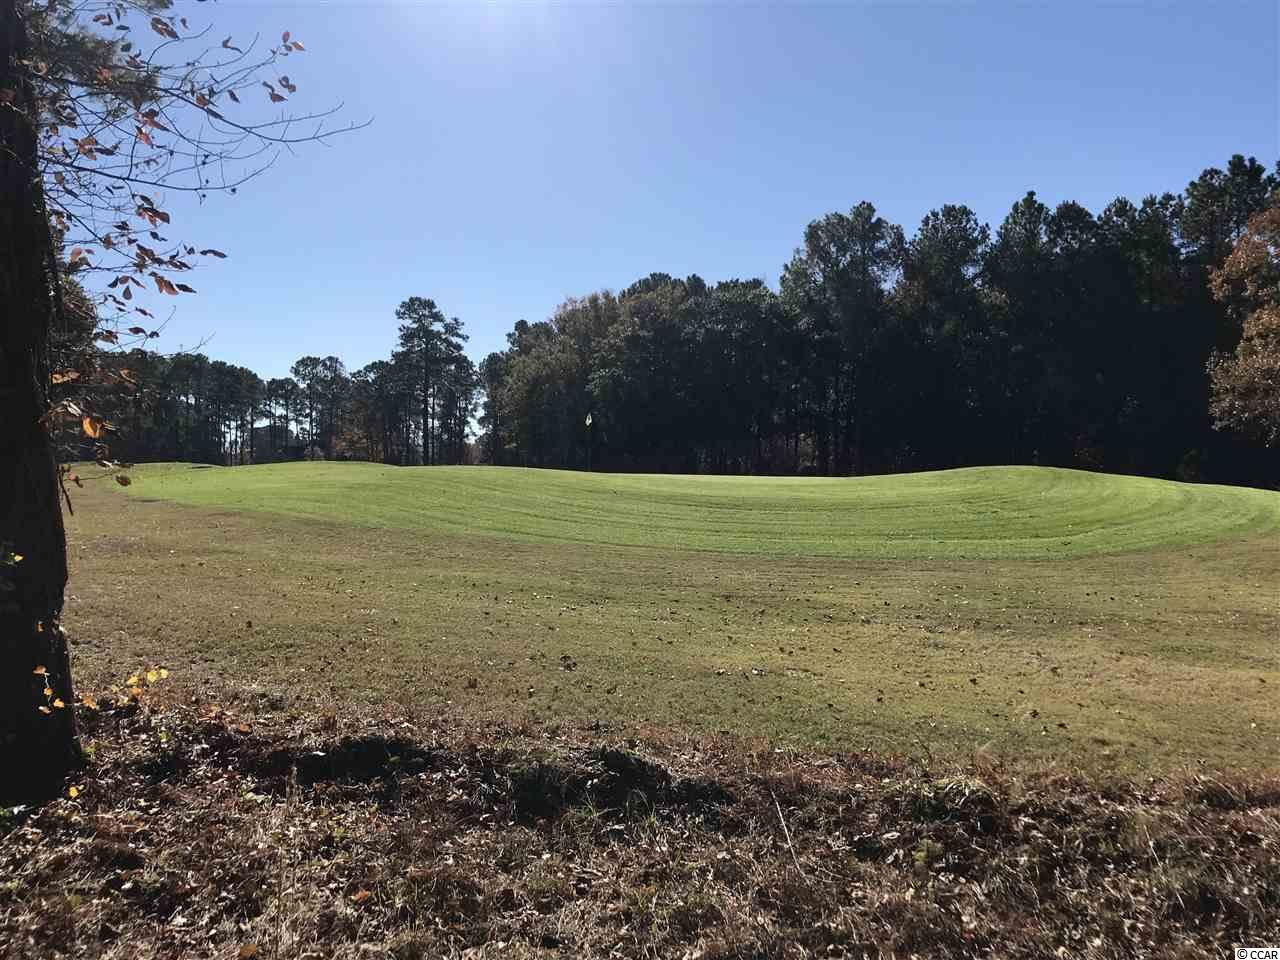 PRICE REDUCED! Premium GOLF COURSE building lot in Little River, SC.  Once hand-picked and owned by the developer of this beautiful golf club, this ESTATE-sized lot is located on the 8TH GREEN of River Hills Golf & Country Club.  Build your custom home on this elevated home site and watch the birdies roll into the cup from your screened porch.  No timeframe to build and choose your own custom builder.  Golf club membership packages available.  Neighborhood is located off Highway 17 in Little River with convenient access to shopping, restaurants, and beaches.